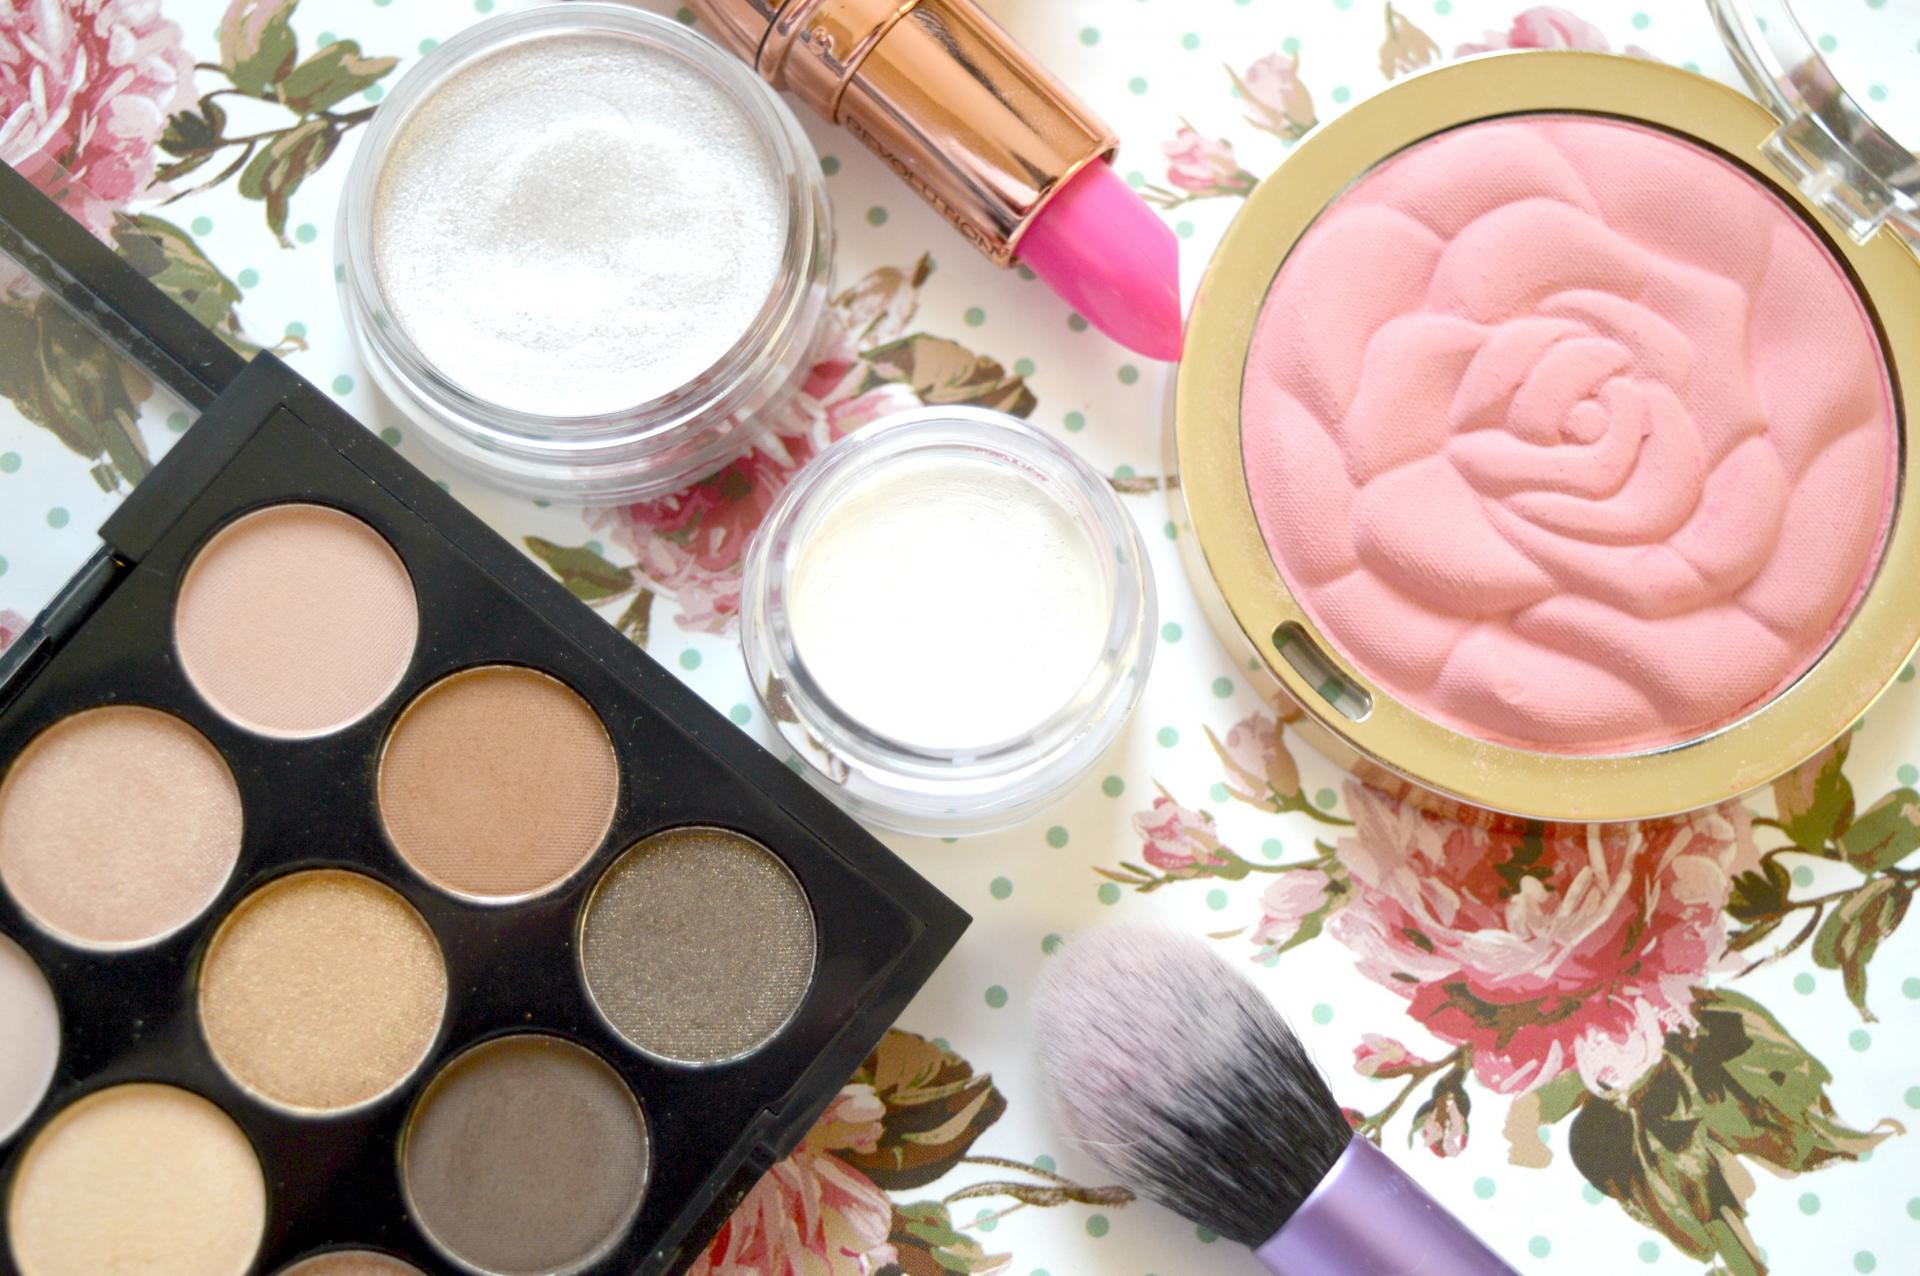 Is There A Right Or Wrong Way To Apply Your Makeup?